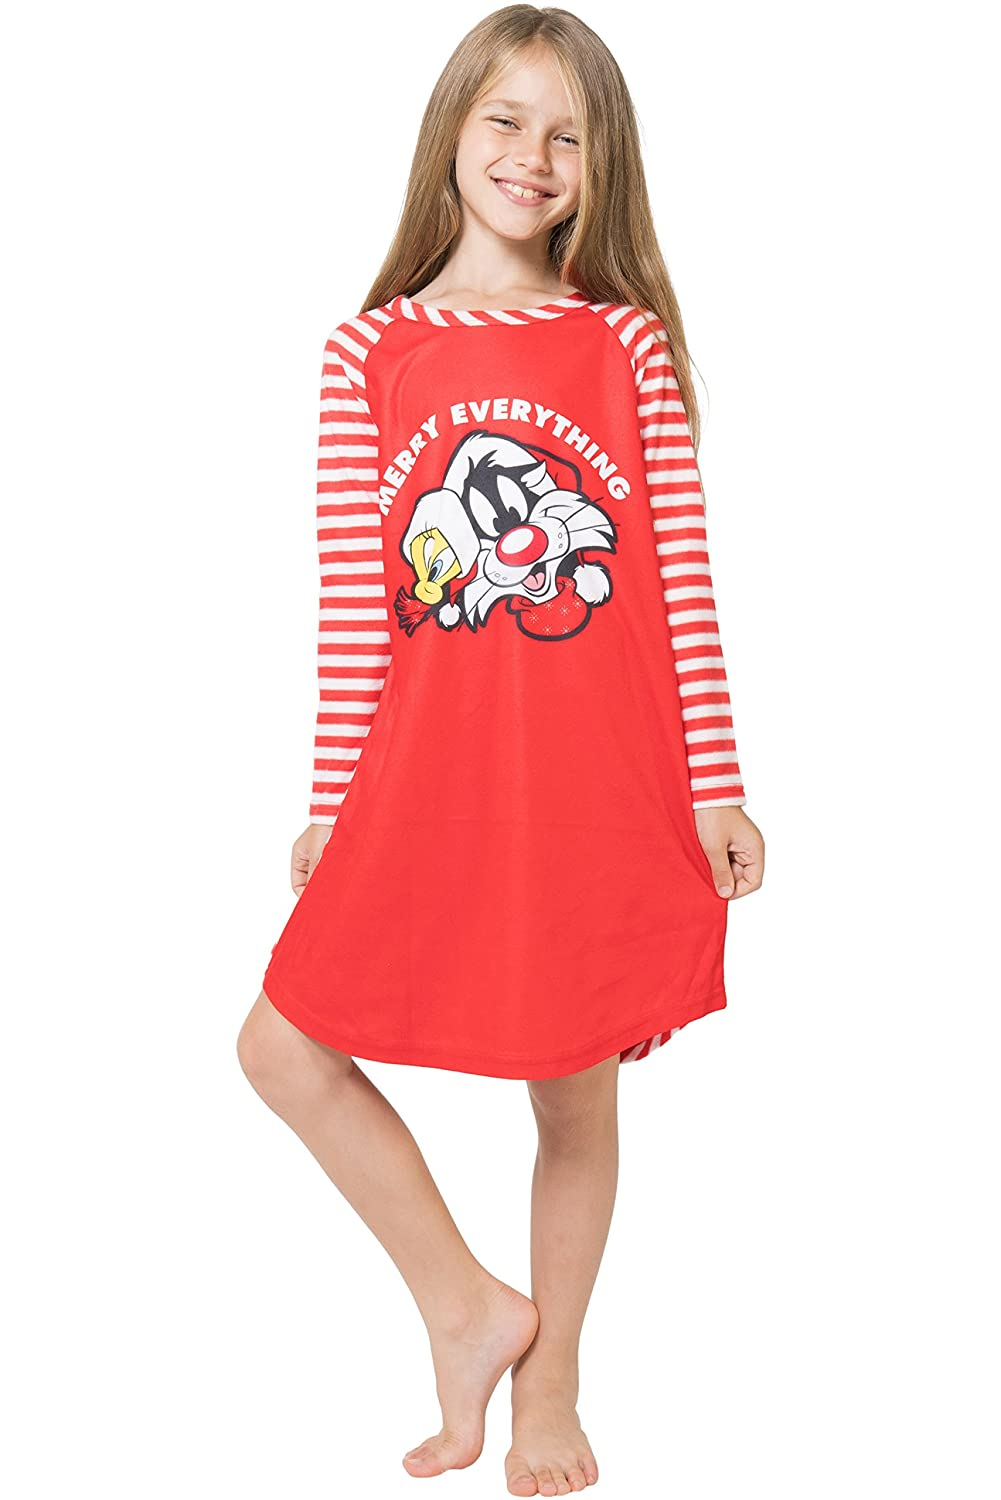 Looney Tunes Tweety and Sylvester Christmas Nightgown for girls LT0119RGL